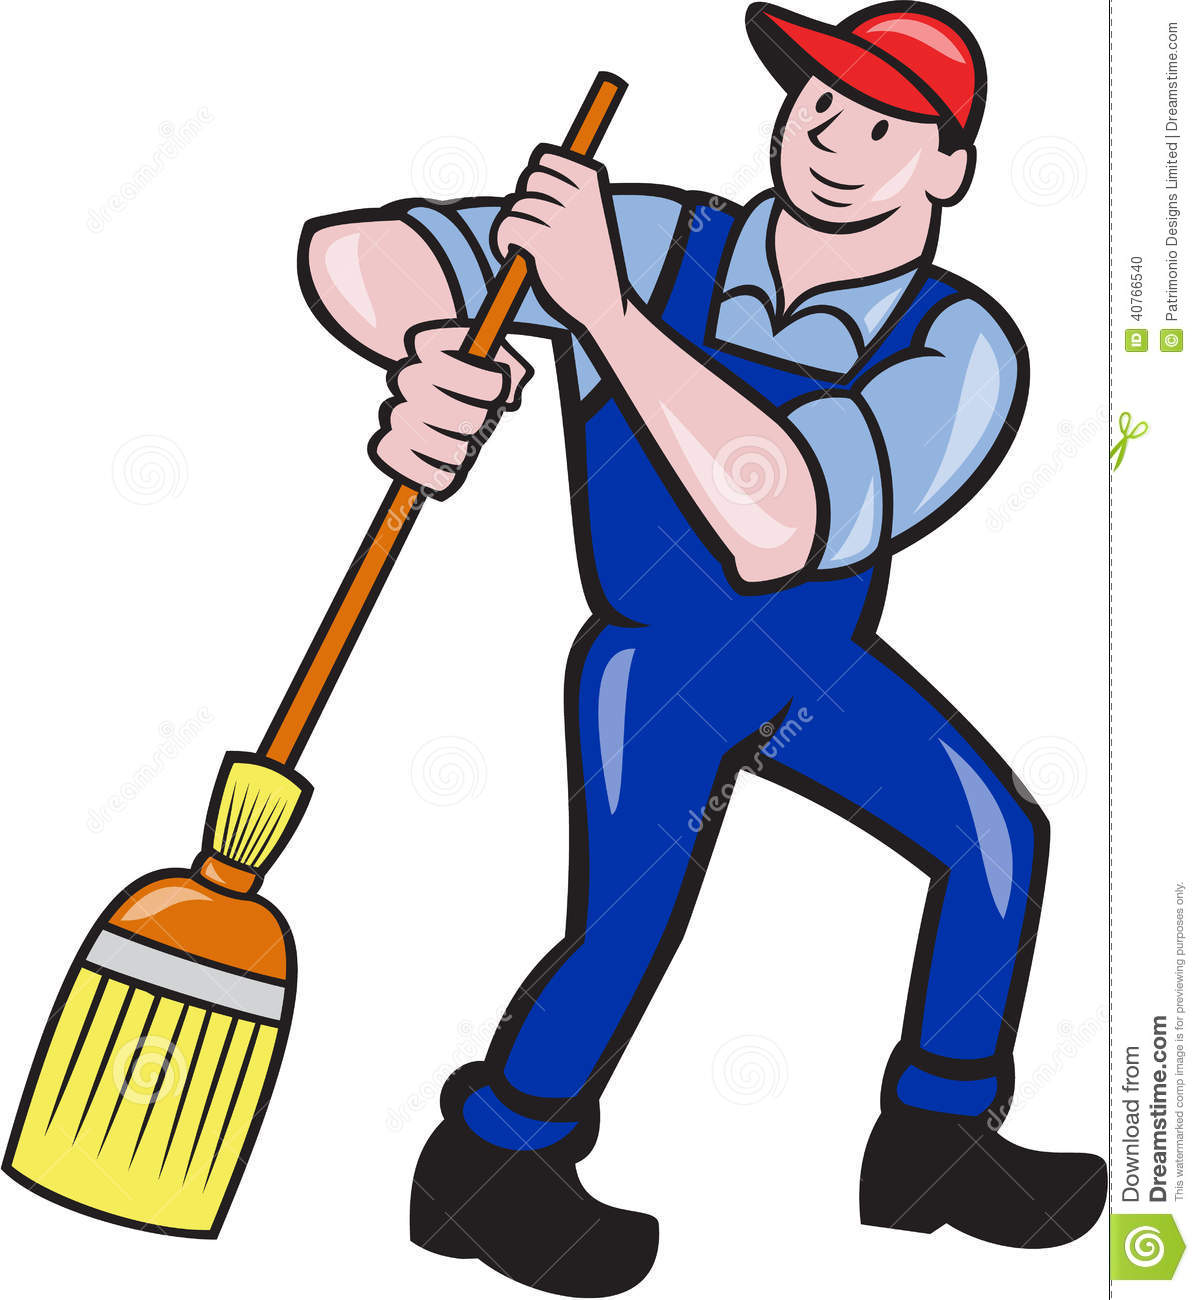 Illustration Of A Janitor Cleaner Worker Sweeping With Broom Viewed